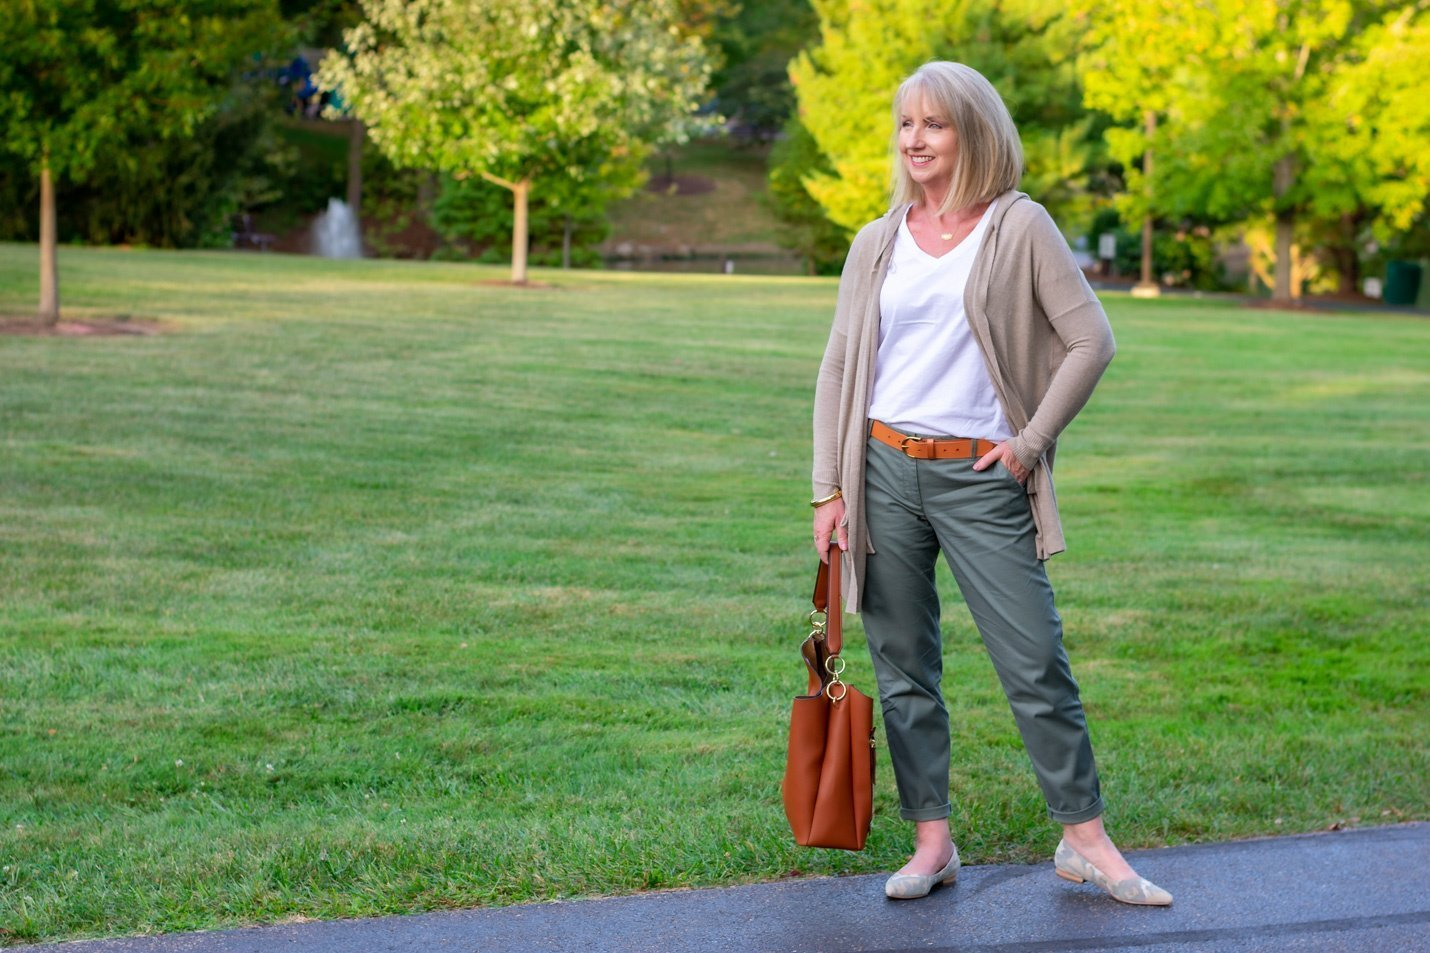 What to wear to Women's Bible Study